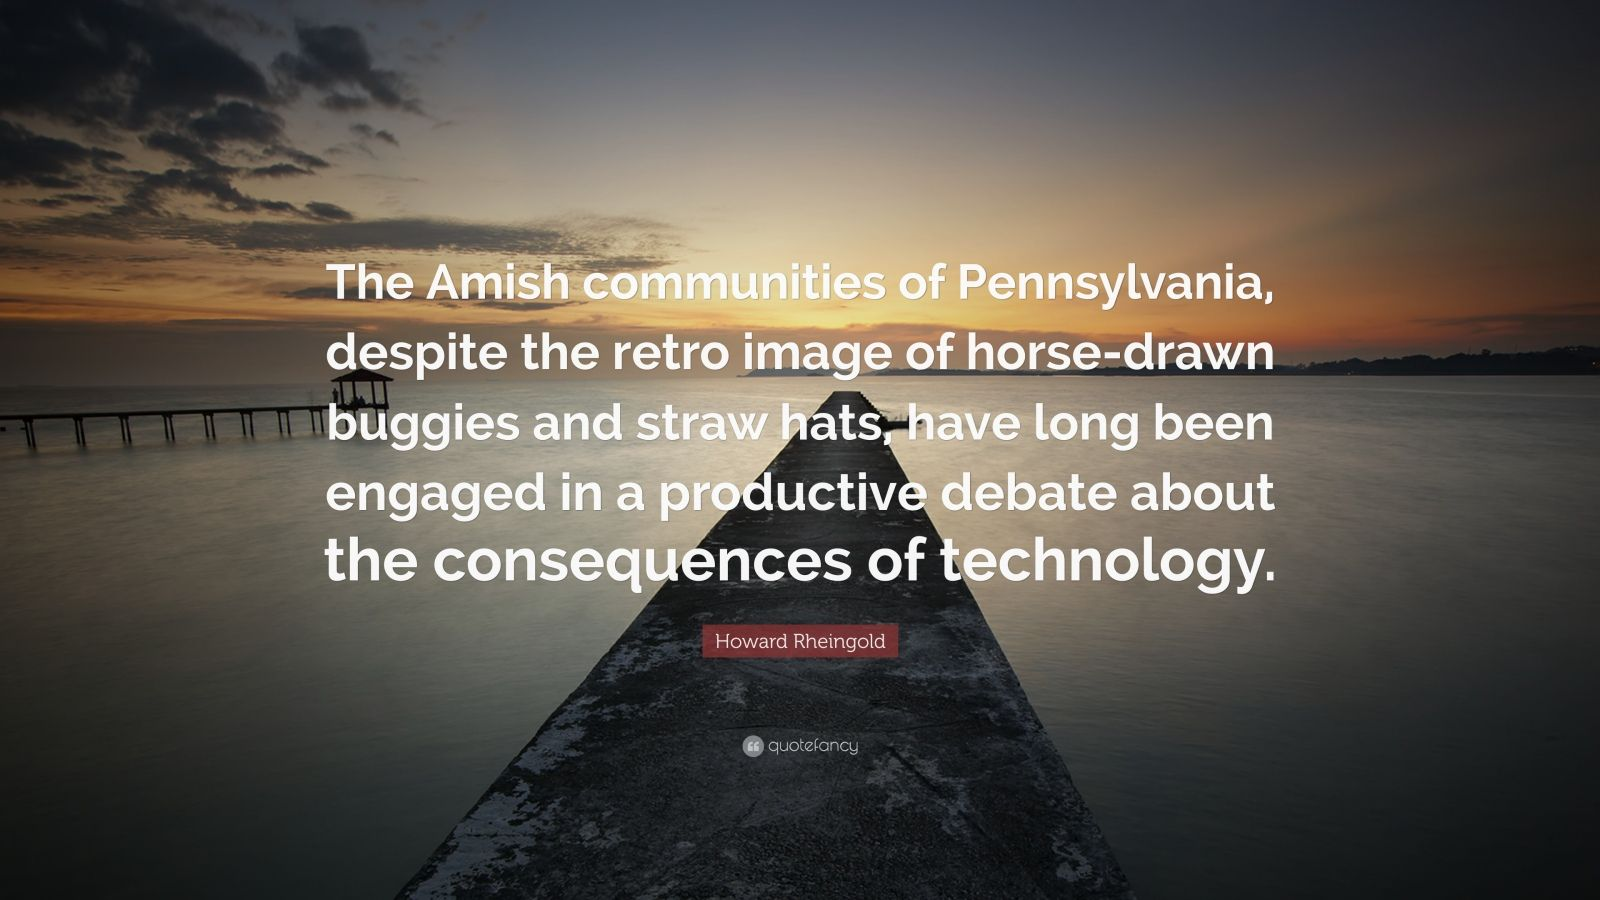 "Howard Rheingold Quote: ""The Amish communities of Pennsylvania, despite the retro image of horse-drawn buggies and straw hats, have long been engaged in a productive debate about the consequences of technology."""